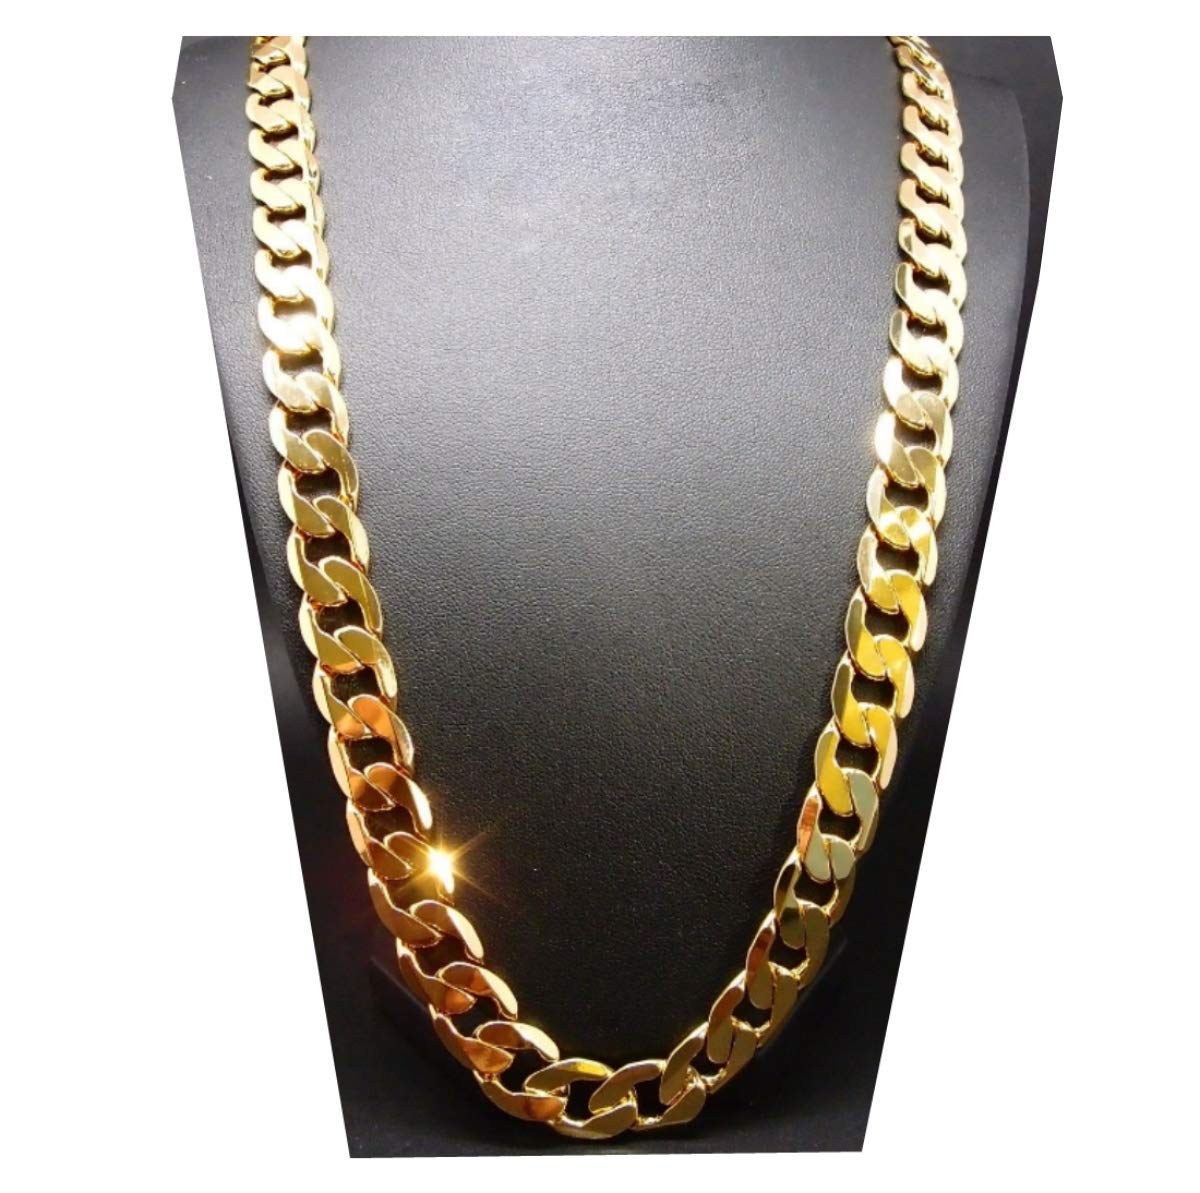 Gold Chain Necklace 7MM 24K Diamond Cut Smooth Cuban Link with a Warranty of A Lifetime USA Made! (24)